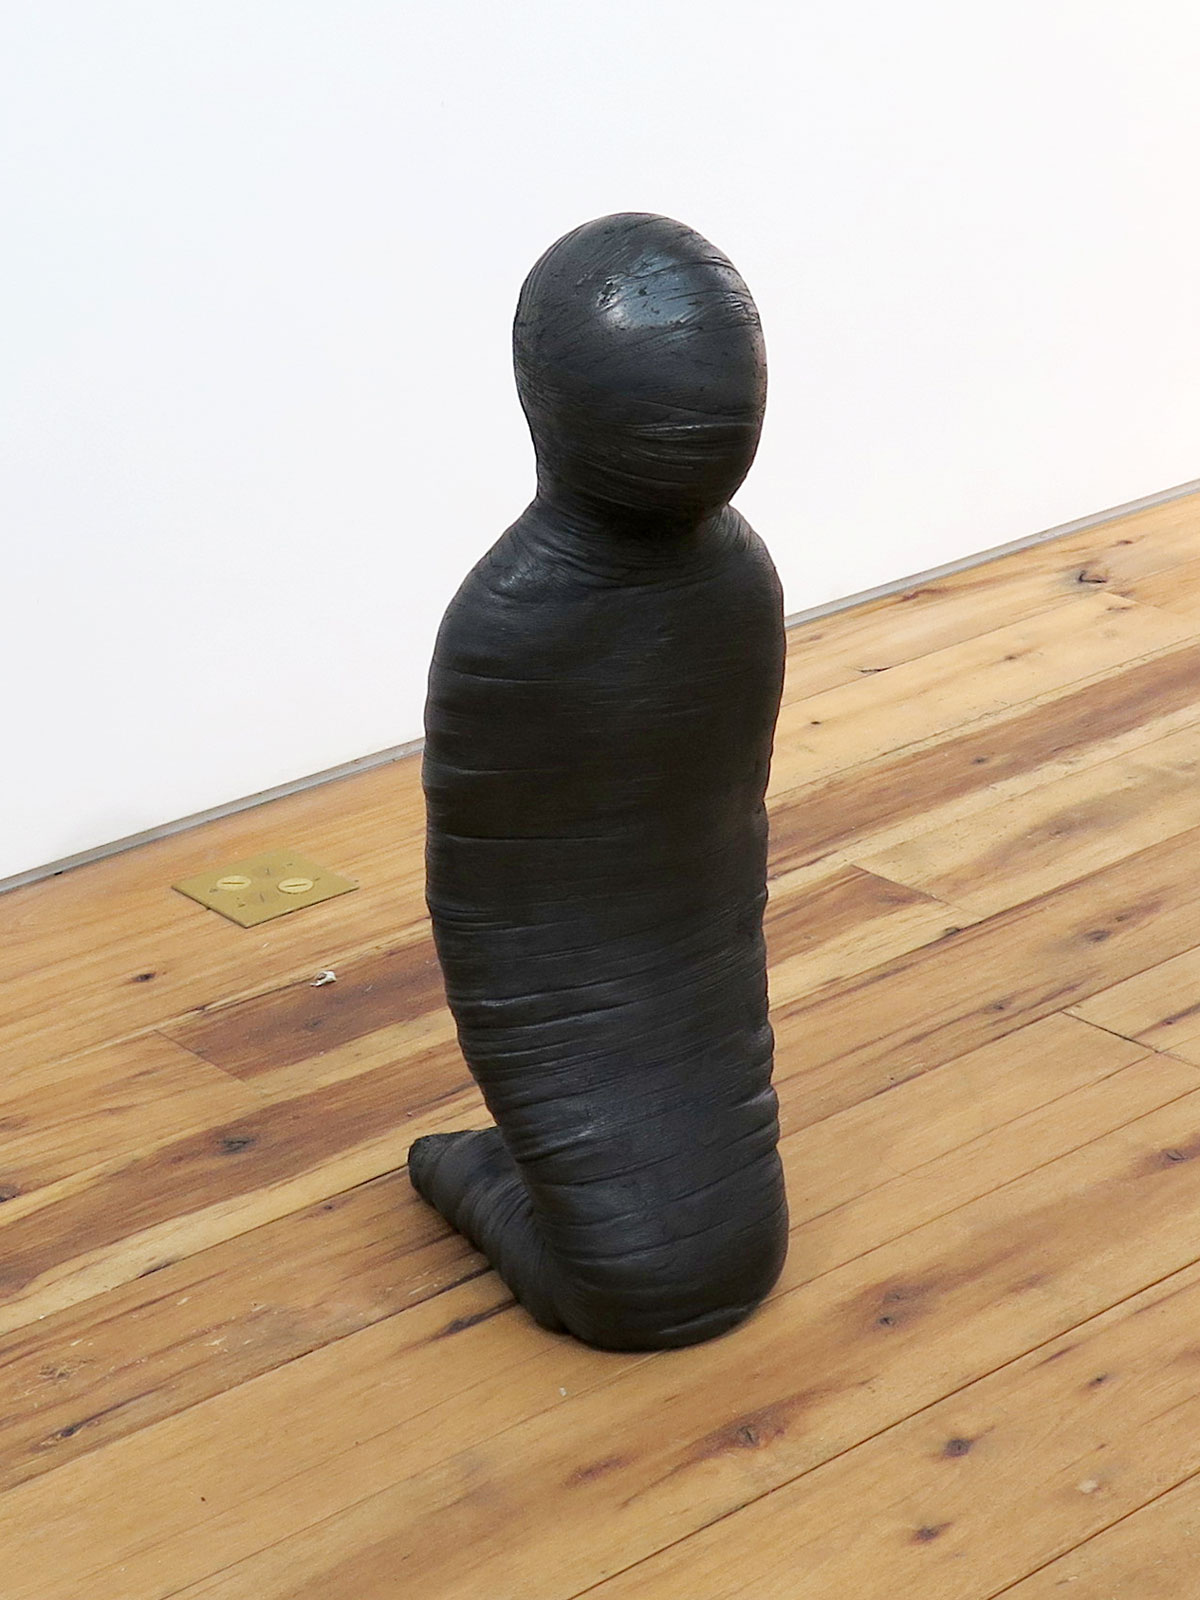 Emil Alzamora 2015 Gypsum with graphite wax finish 31 x 10 x 13 1/2 inches / 79 x 25 x 34 cm 2015 Marc Straus Gallery